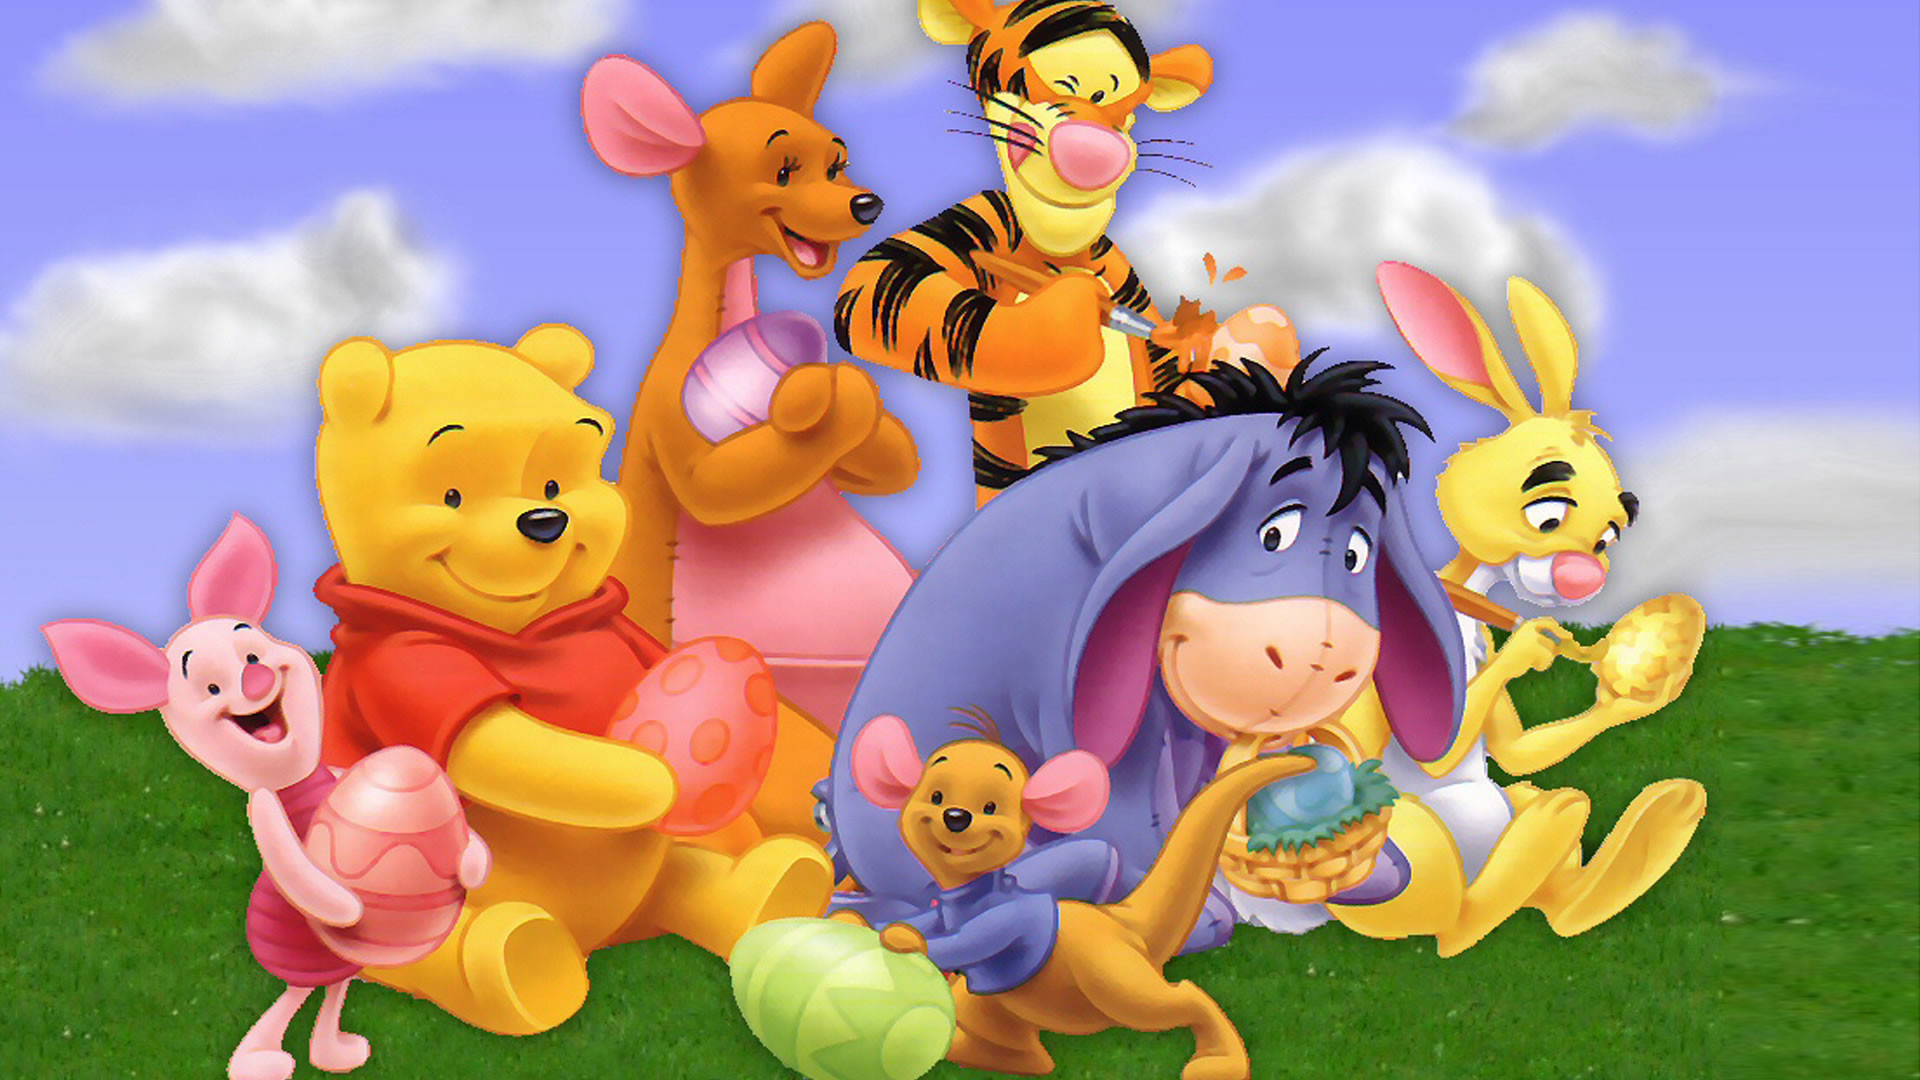 My friends tigger pooh wallpapers 1920x1080 cartoon wallpaper hd of winnie the pooh 8 winnie the pooh cast hd wallpapers download my friends tigger thecheapjerseys Images